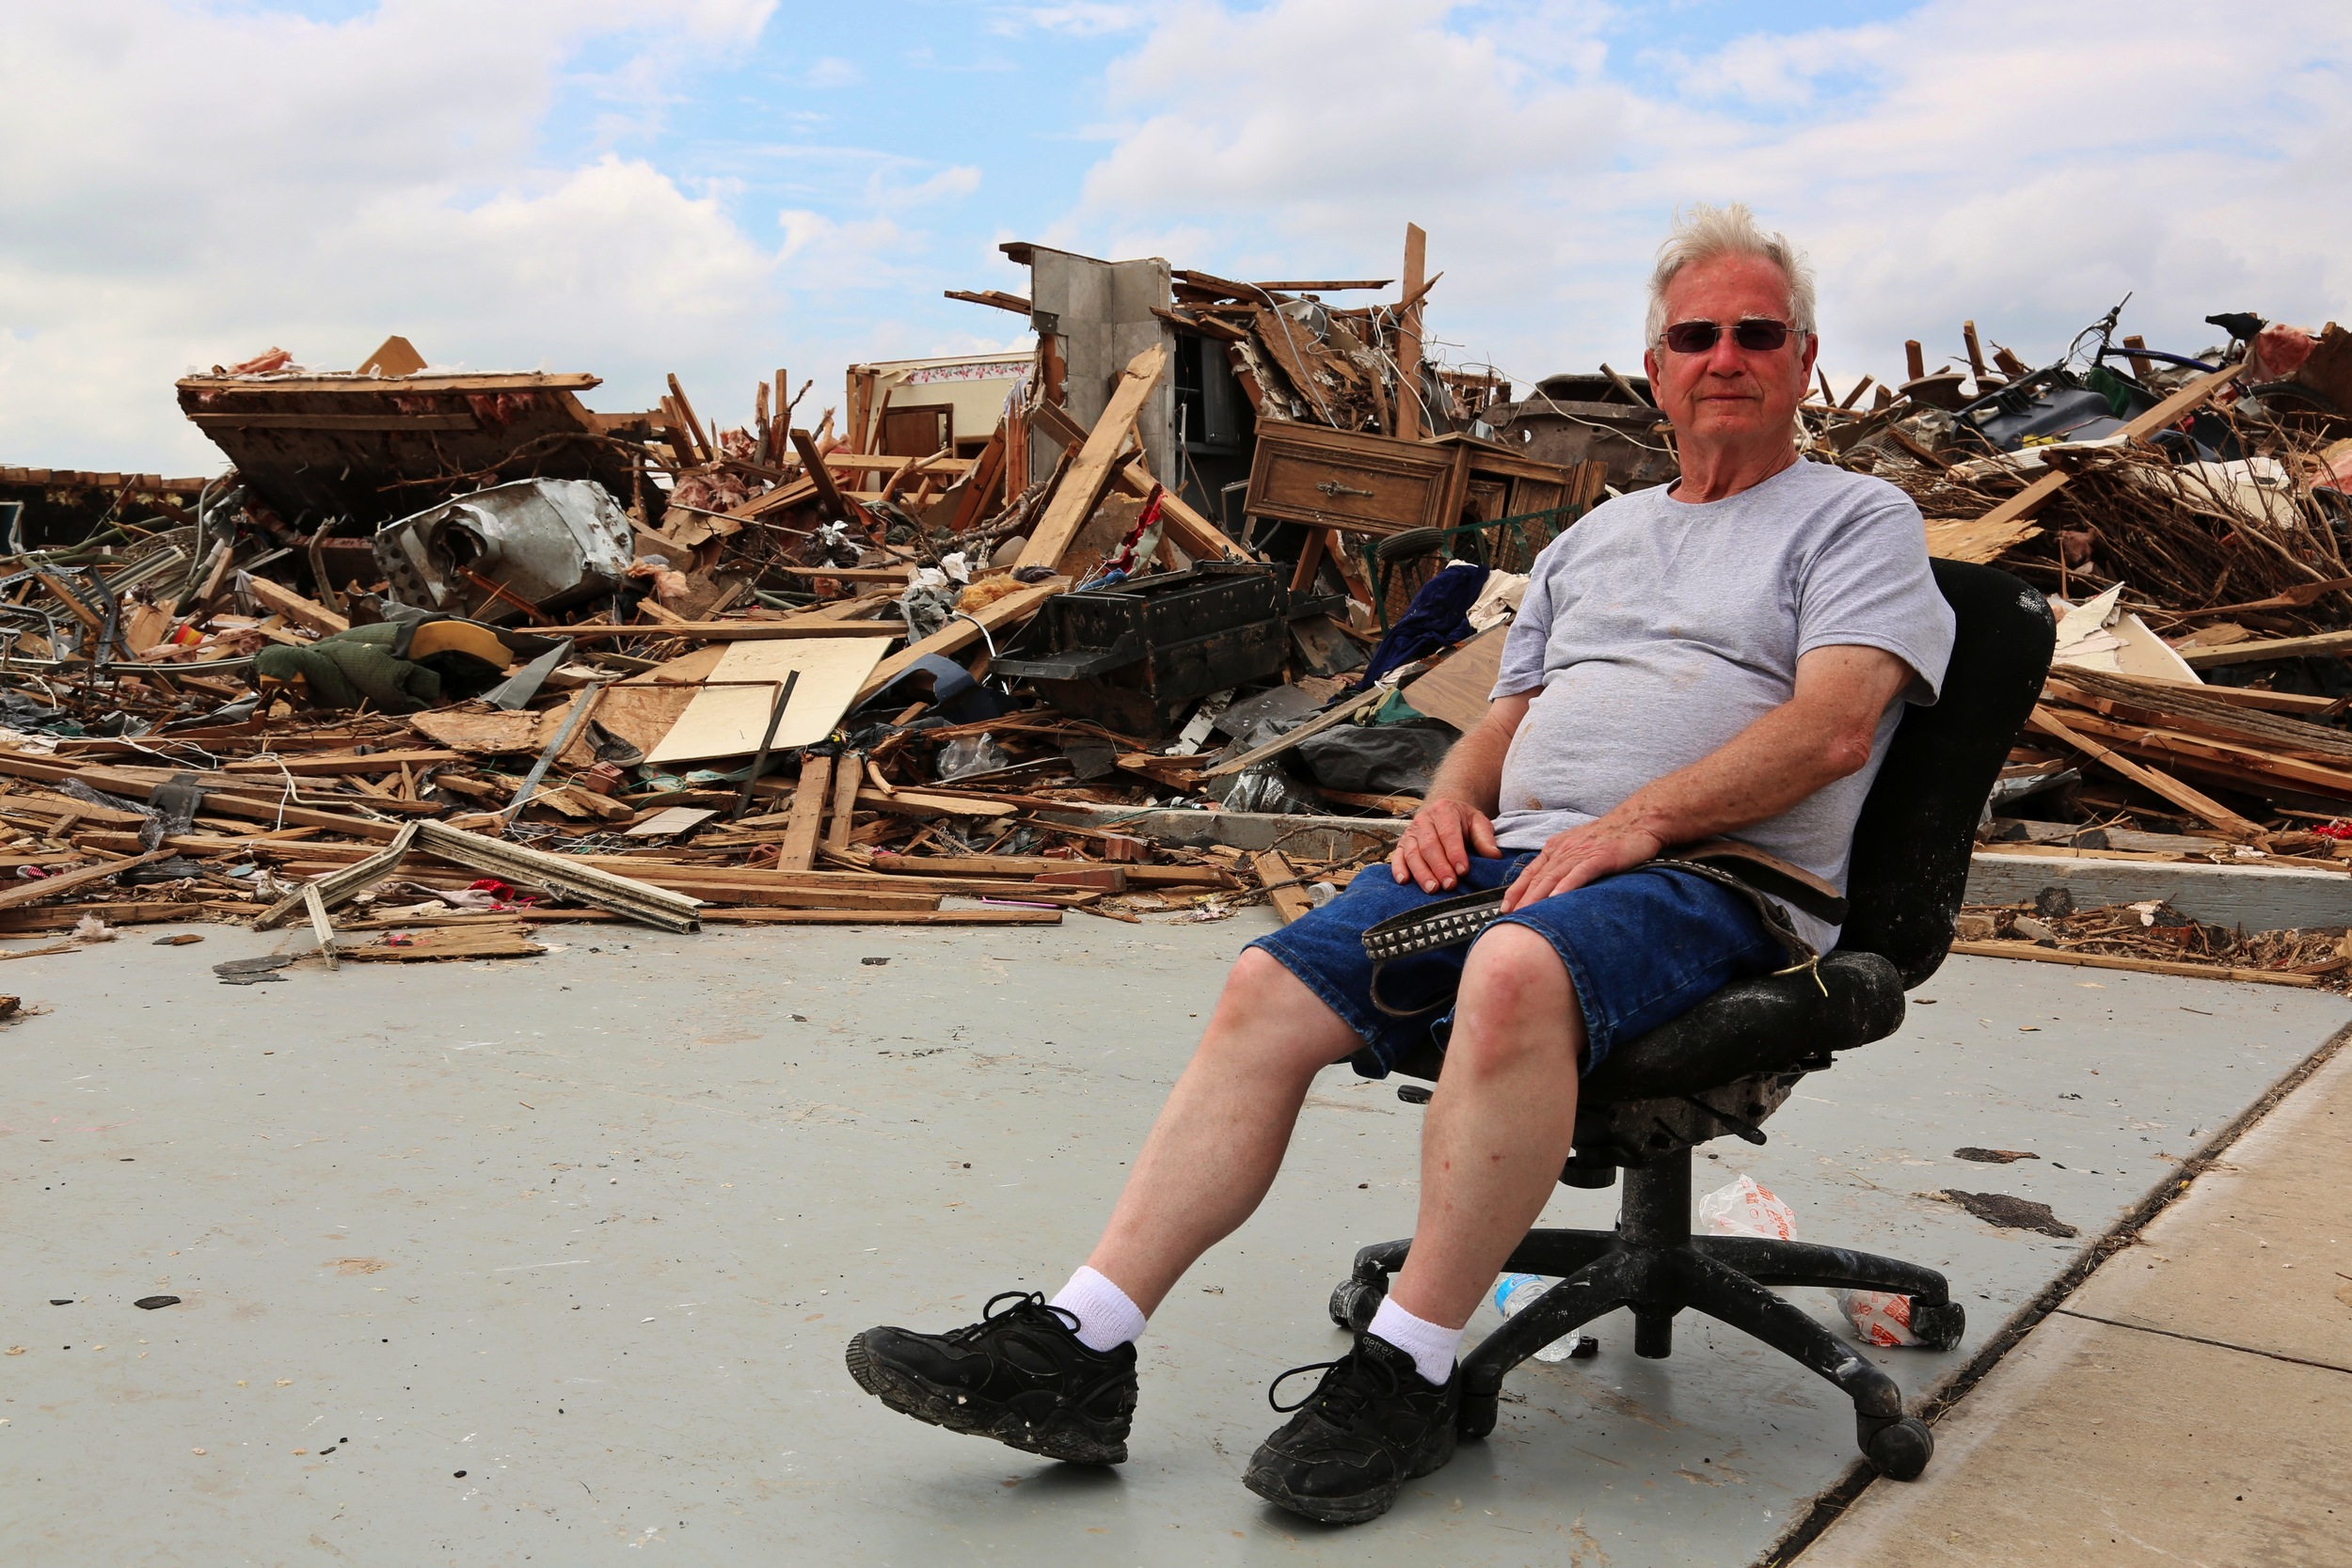 Robert Jones, of Oklahoma City, road out the tornado in his home.